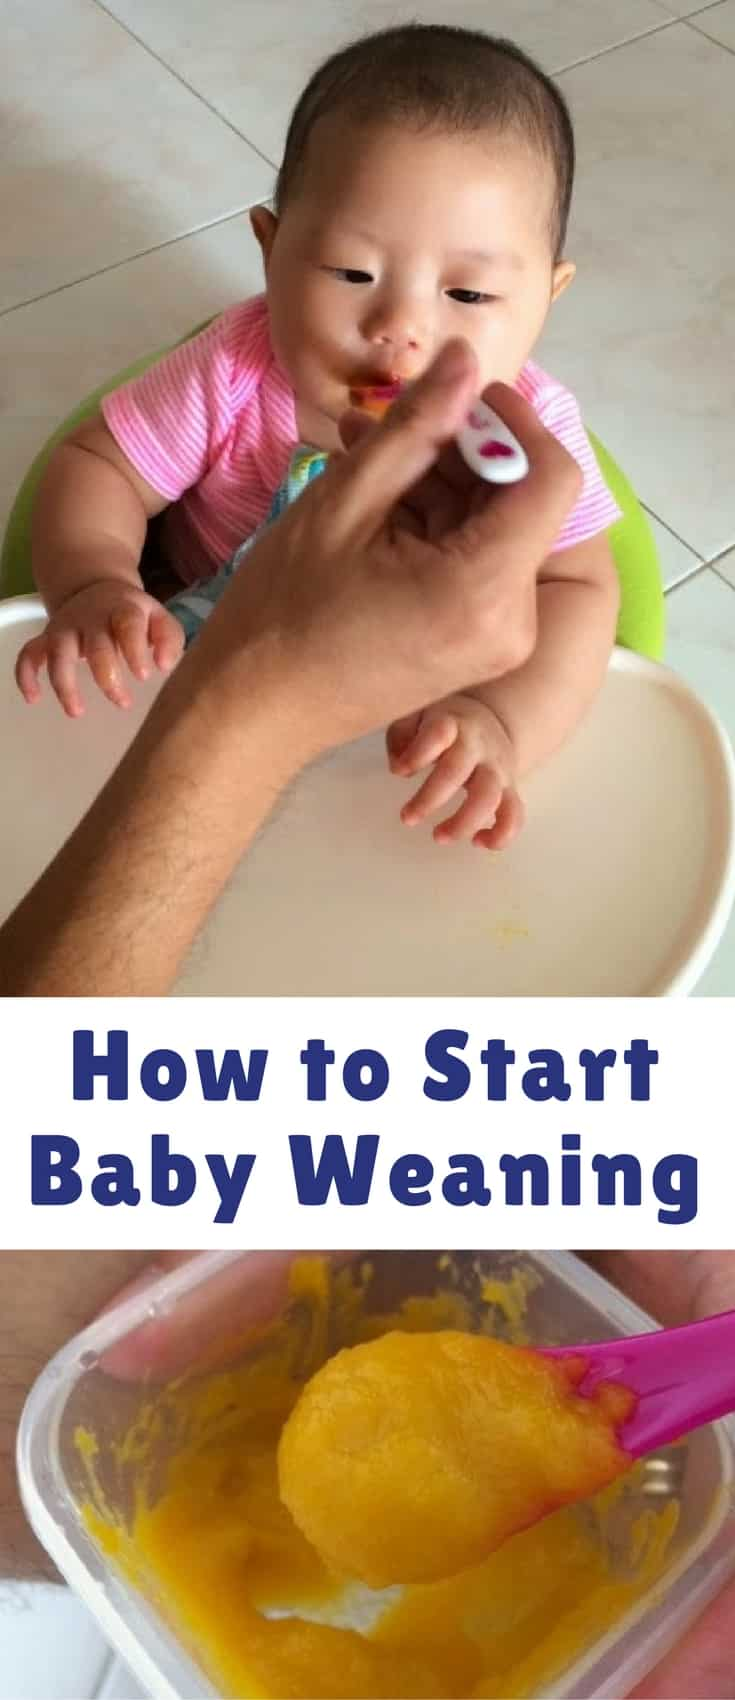 Have a fun time planning and preparing for your baby's first food! It's really a joy to see our little babies start eating - a major milestone :)